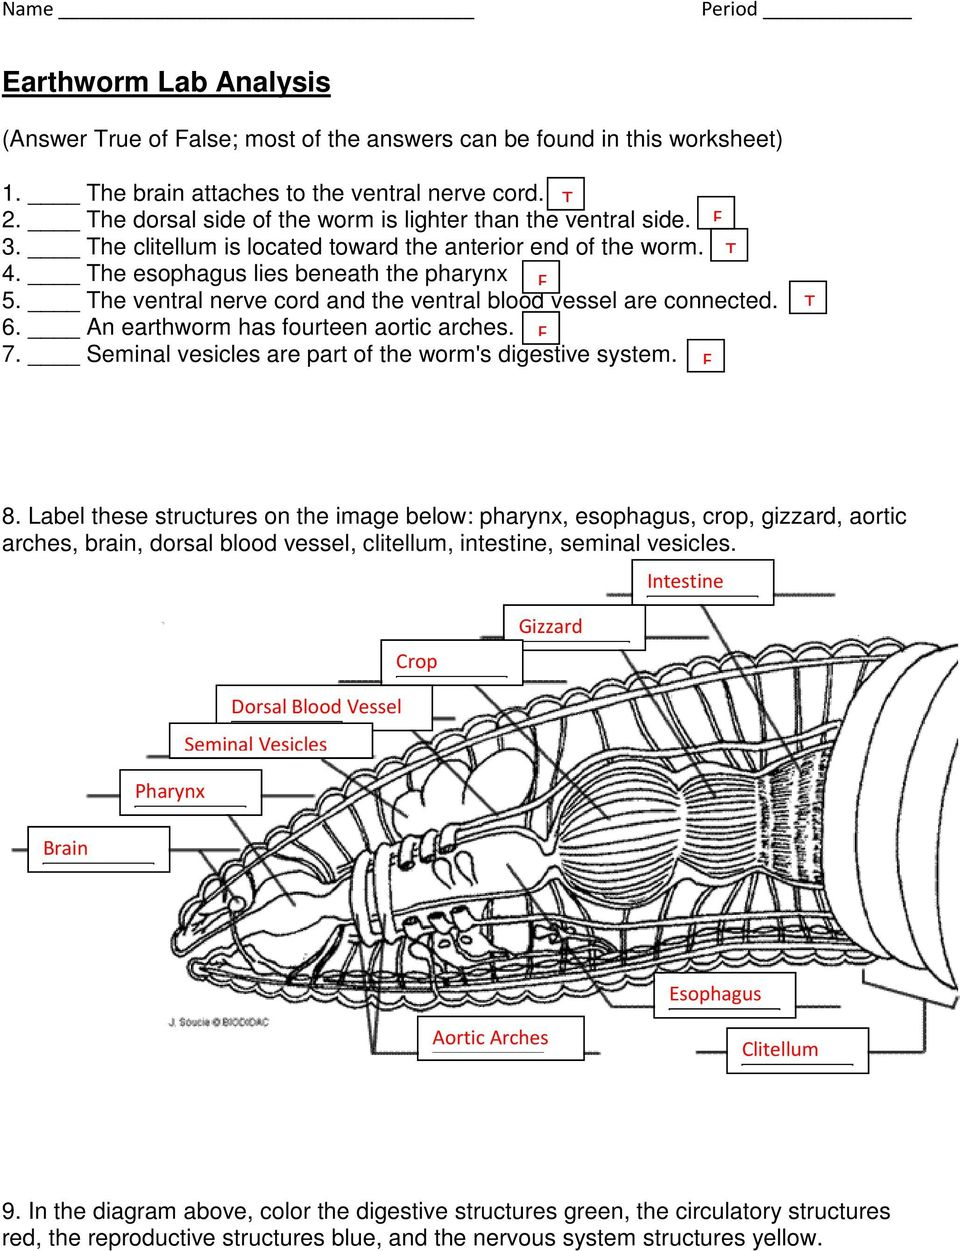 6th Grade Earthworm Internal Anatomy Diagram - Complete Wiring ...